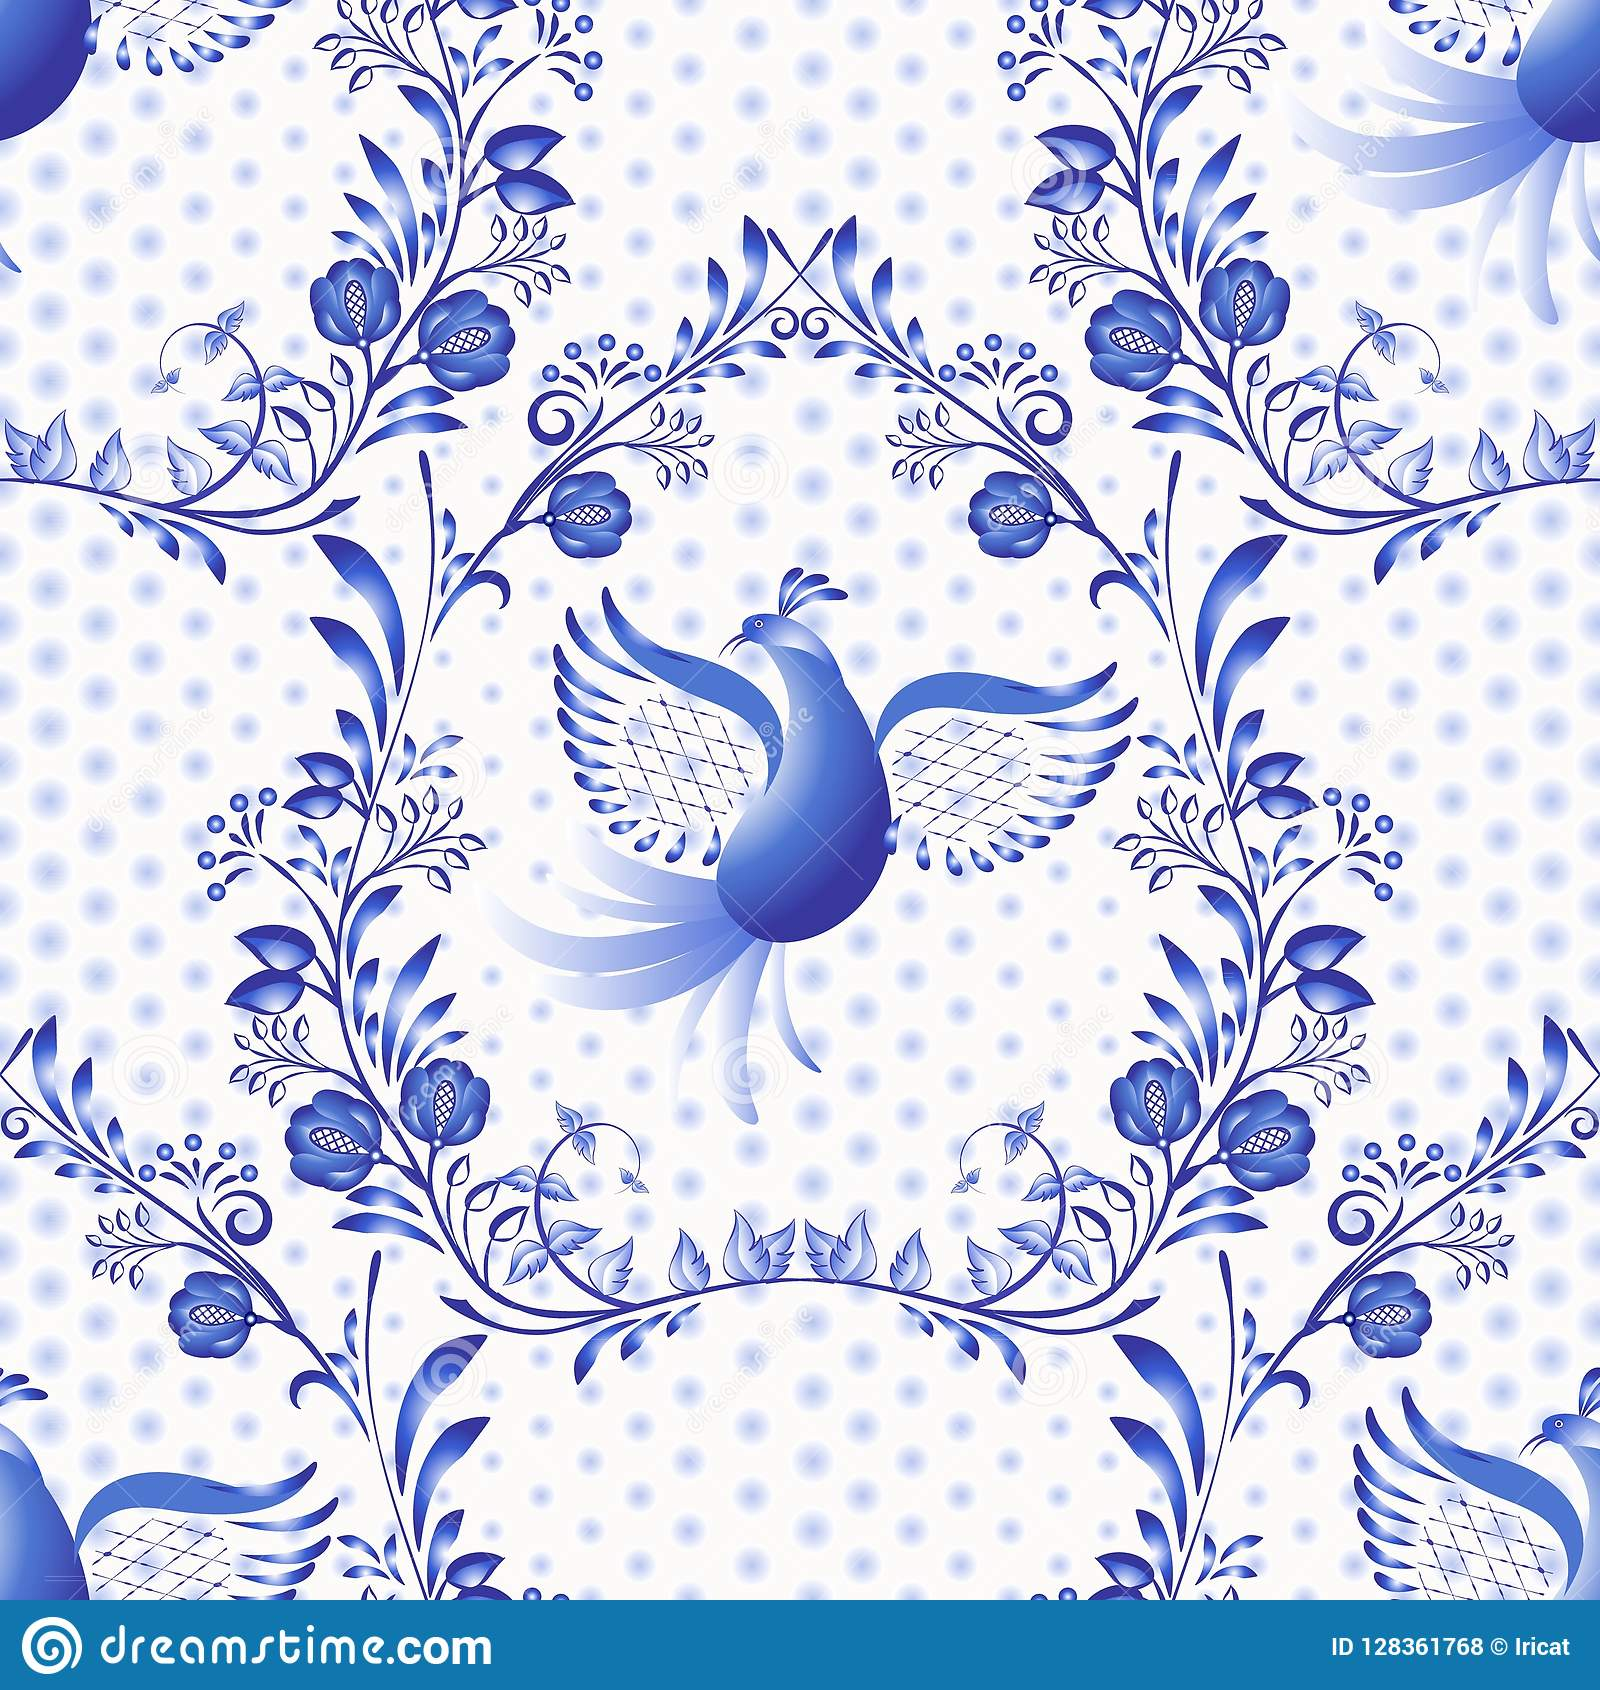 Blue seamless pattern. Floral background with birds and dots in the style of national porcelain painting.